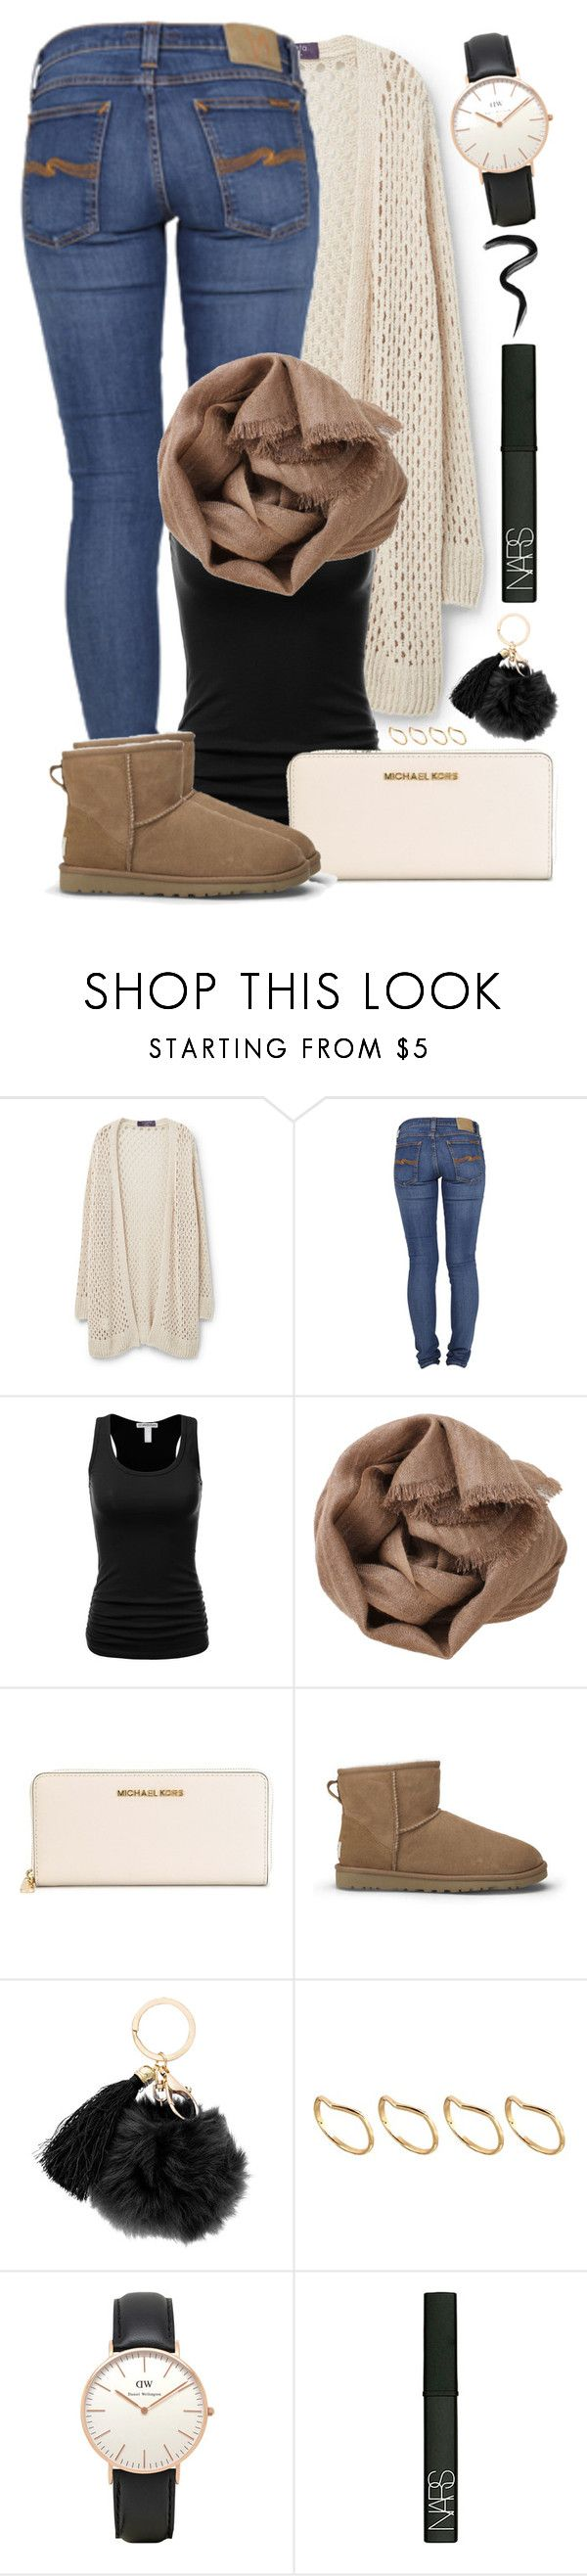 """""""#33"""" by oneandonlyfashion ❤ liked on Polyvore featuring Violeta by Mango, Nudie Jeans Co., Brunello Cucinelli, MICHAEL Michael Kors, UGG Australia, ASOS, Topshop, NARS Cosmetics and Laura Mercier"""